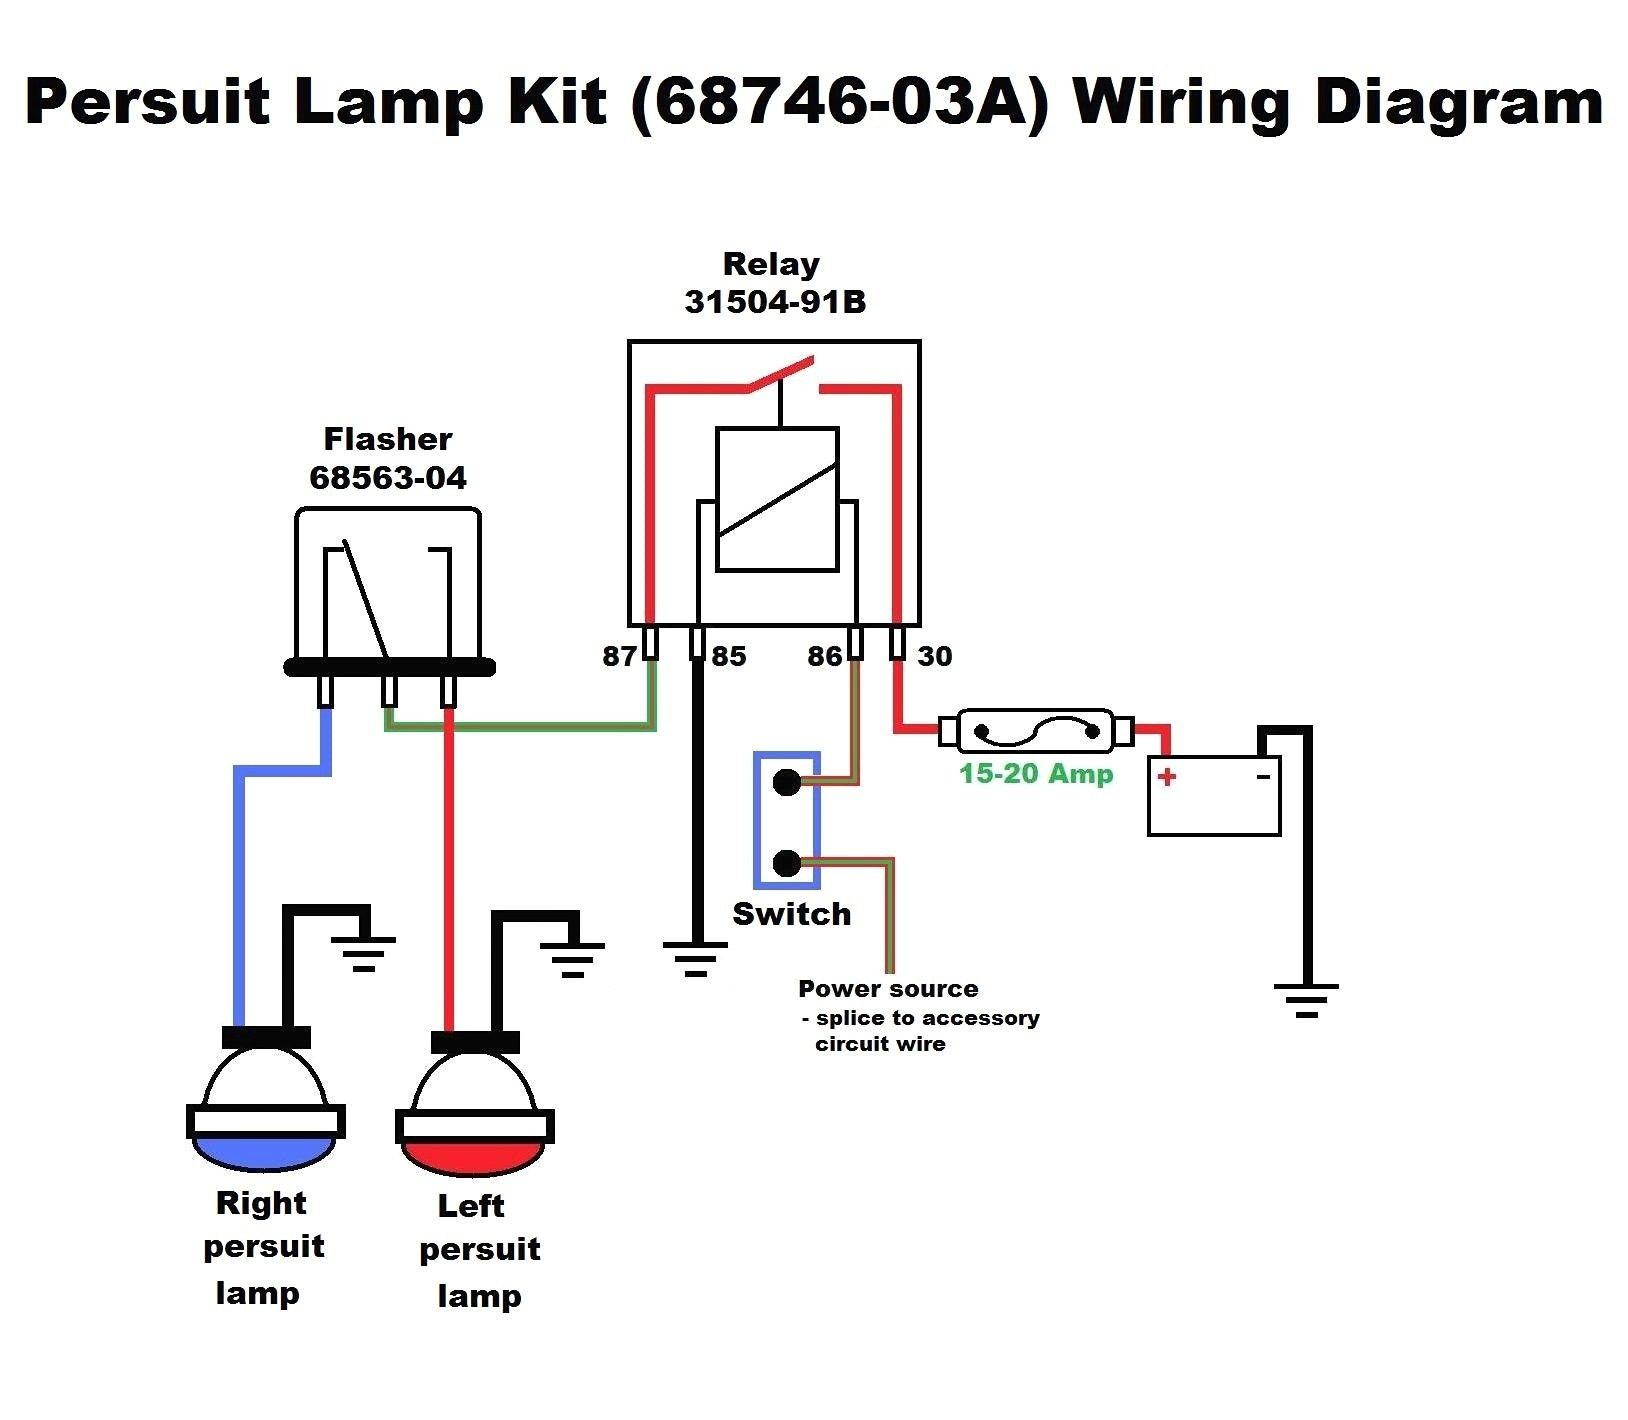 New Mercedes Glow Plug Relay Wiring Diagram Diagram Electrical Wiring Diagram Motorcycle Wiring